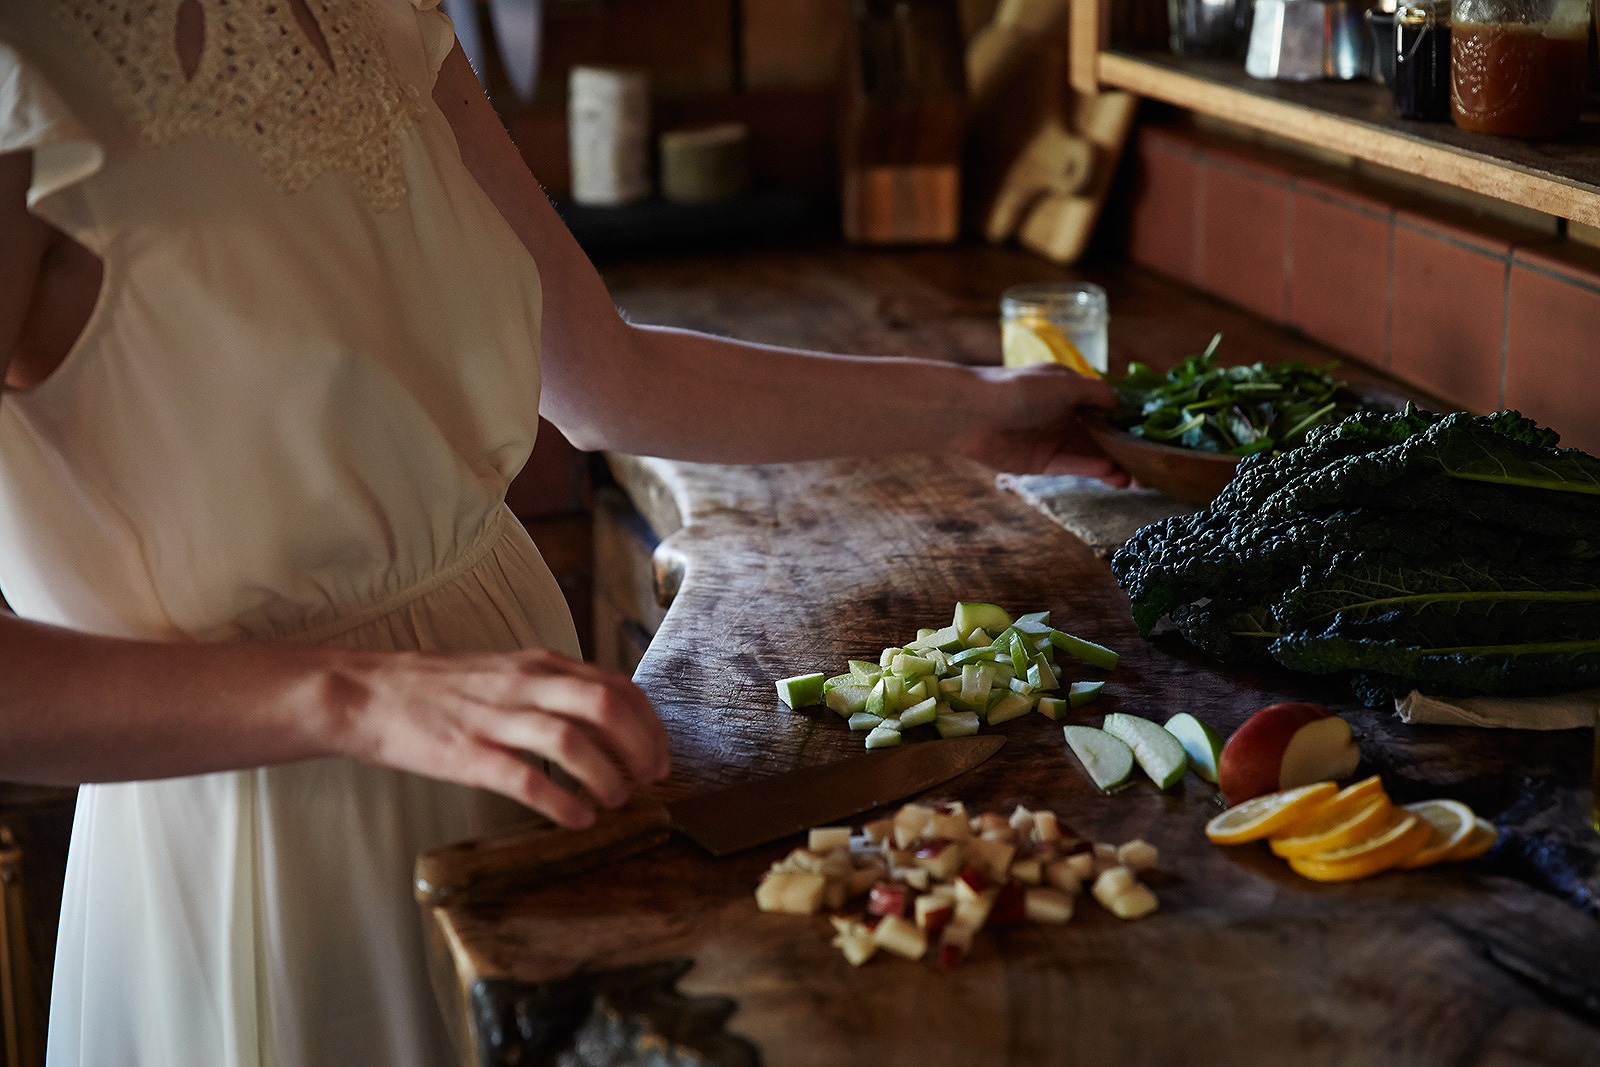 Woman cooking in rustic kitchen  | Trinette+Chris Photographers